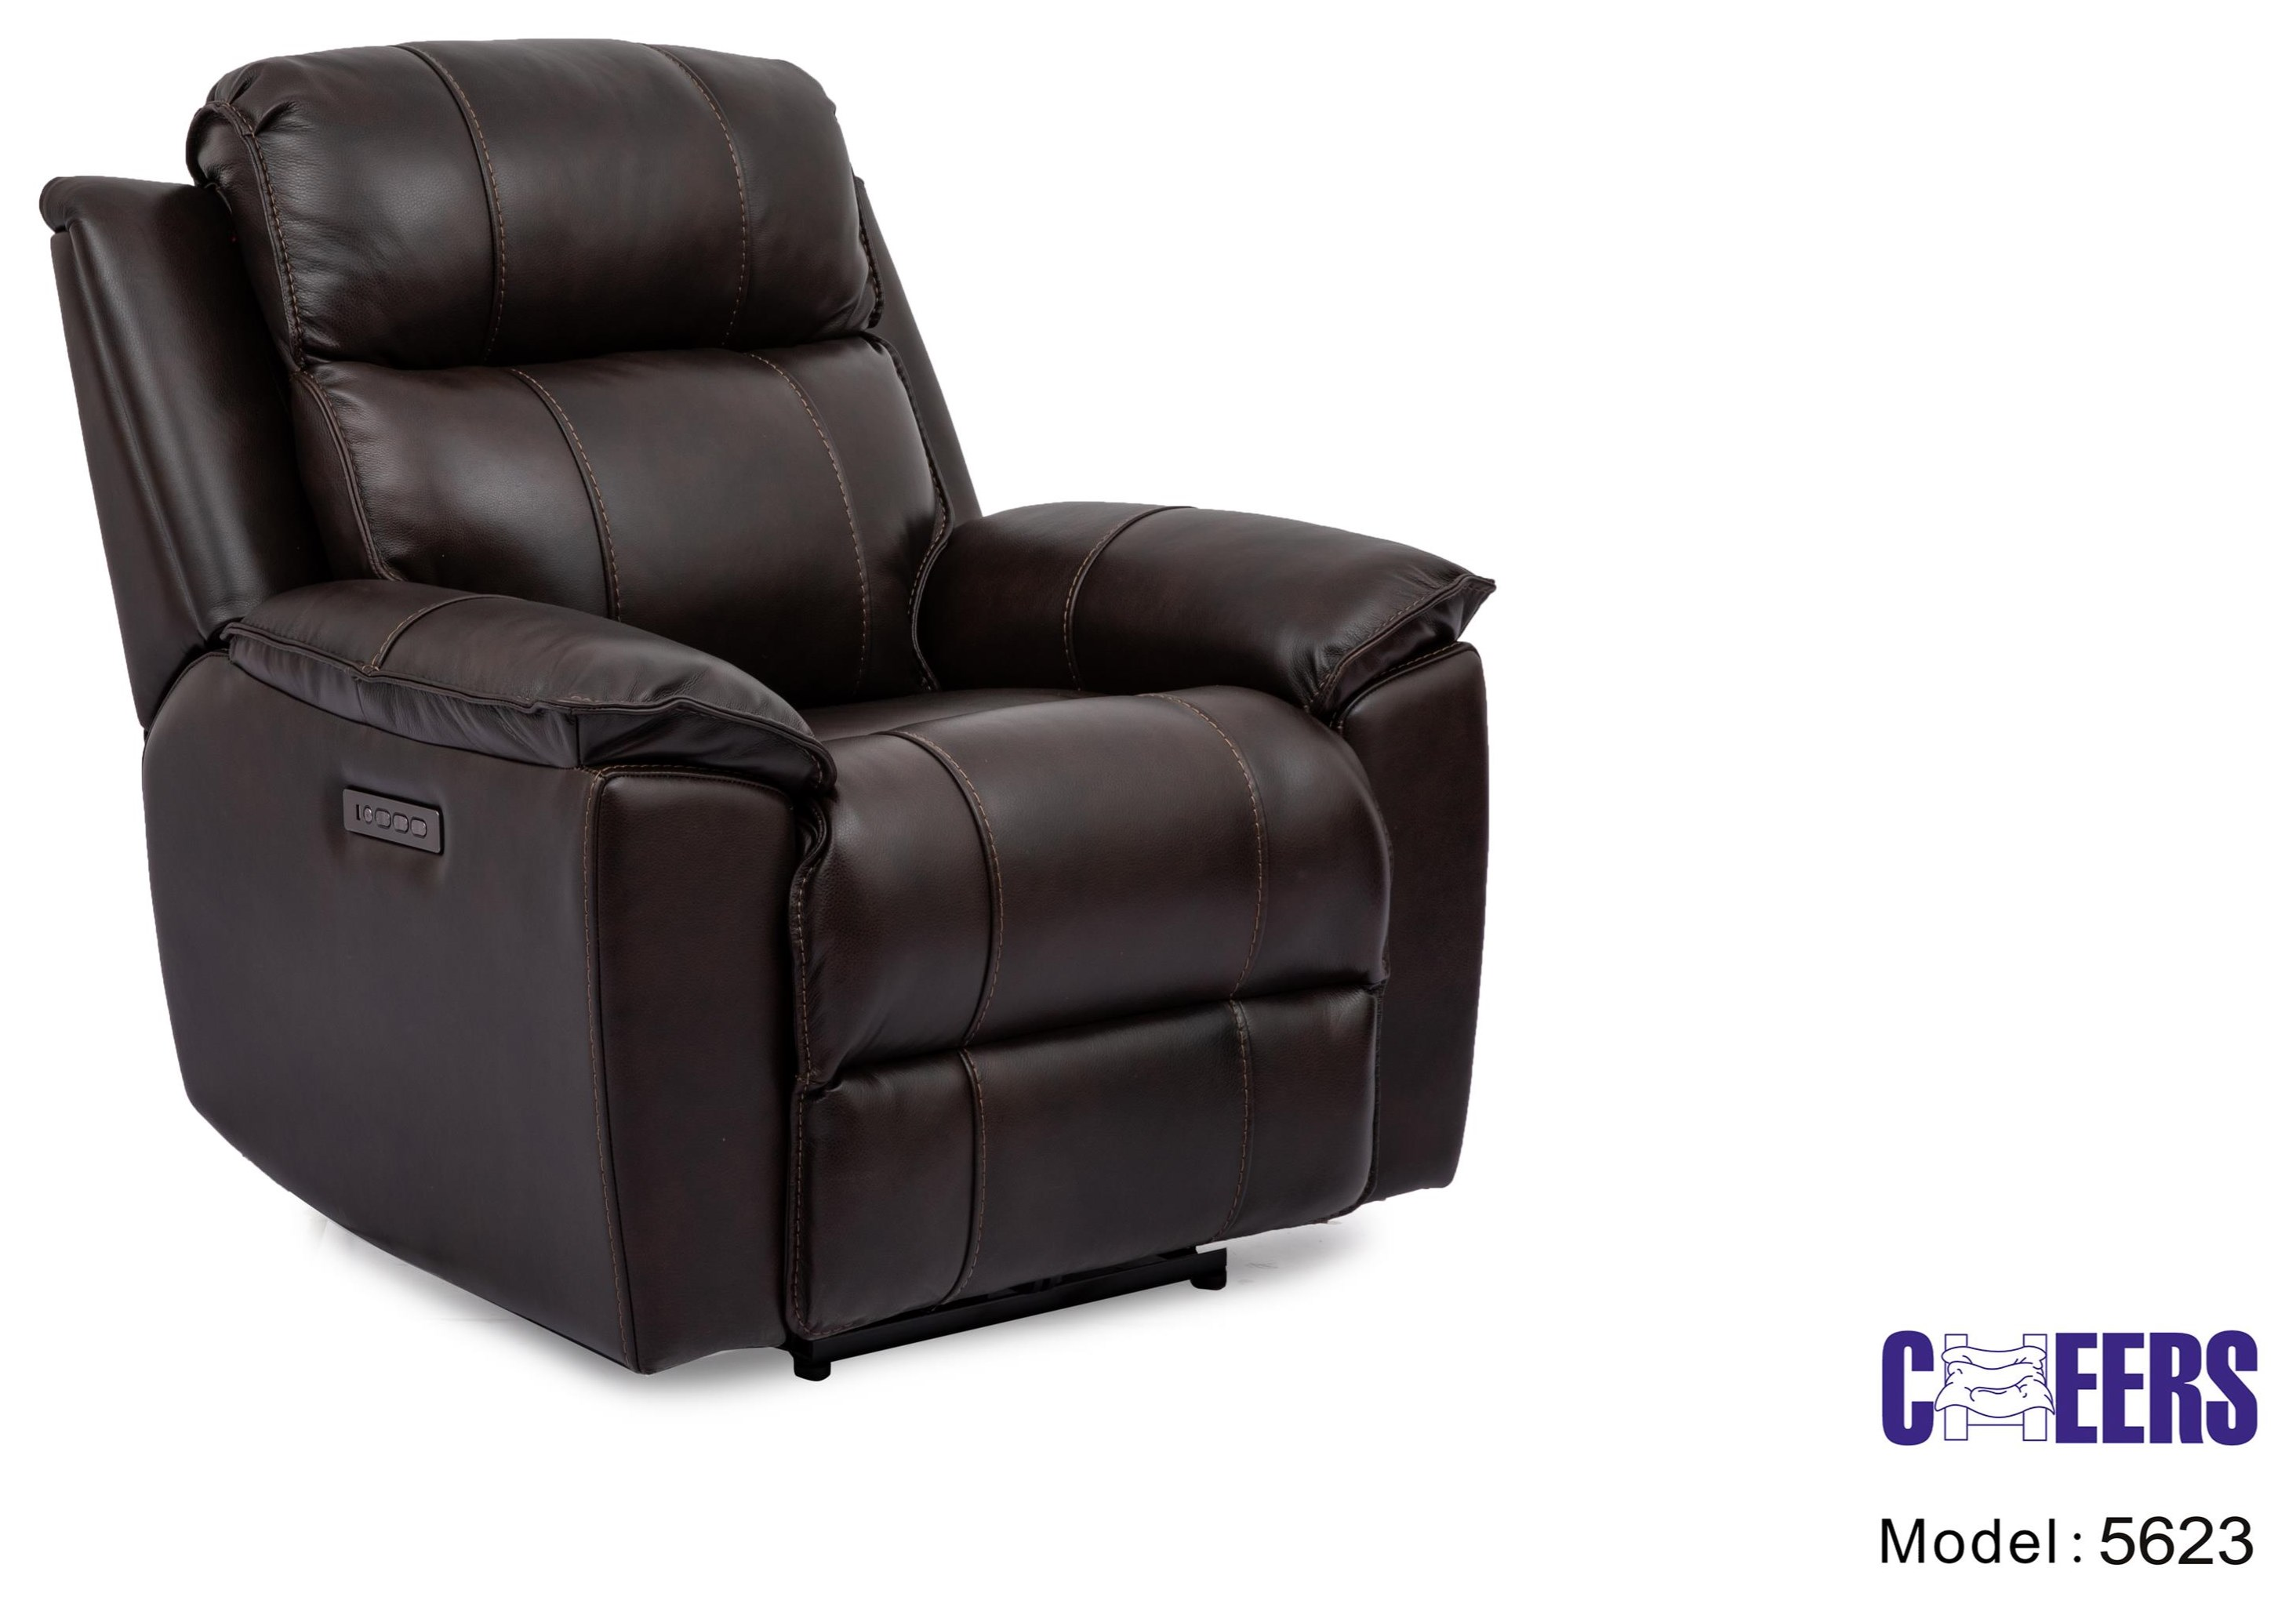 Triple Play Recliner